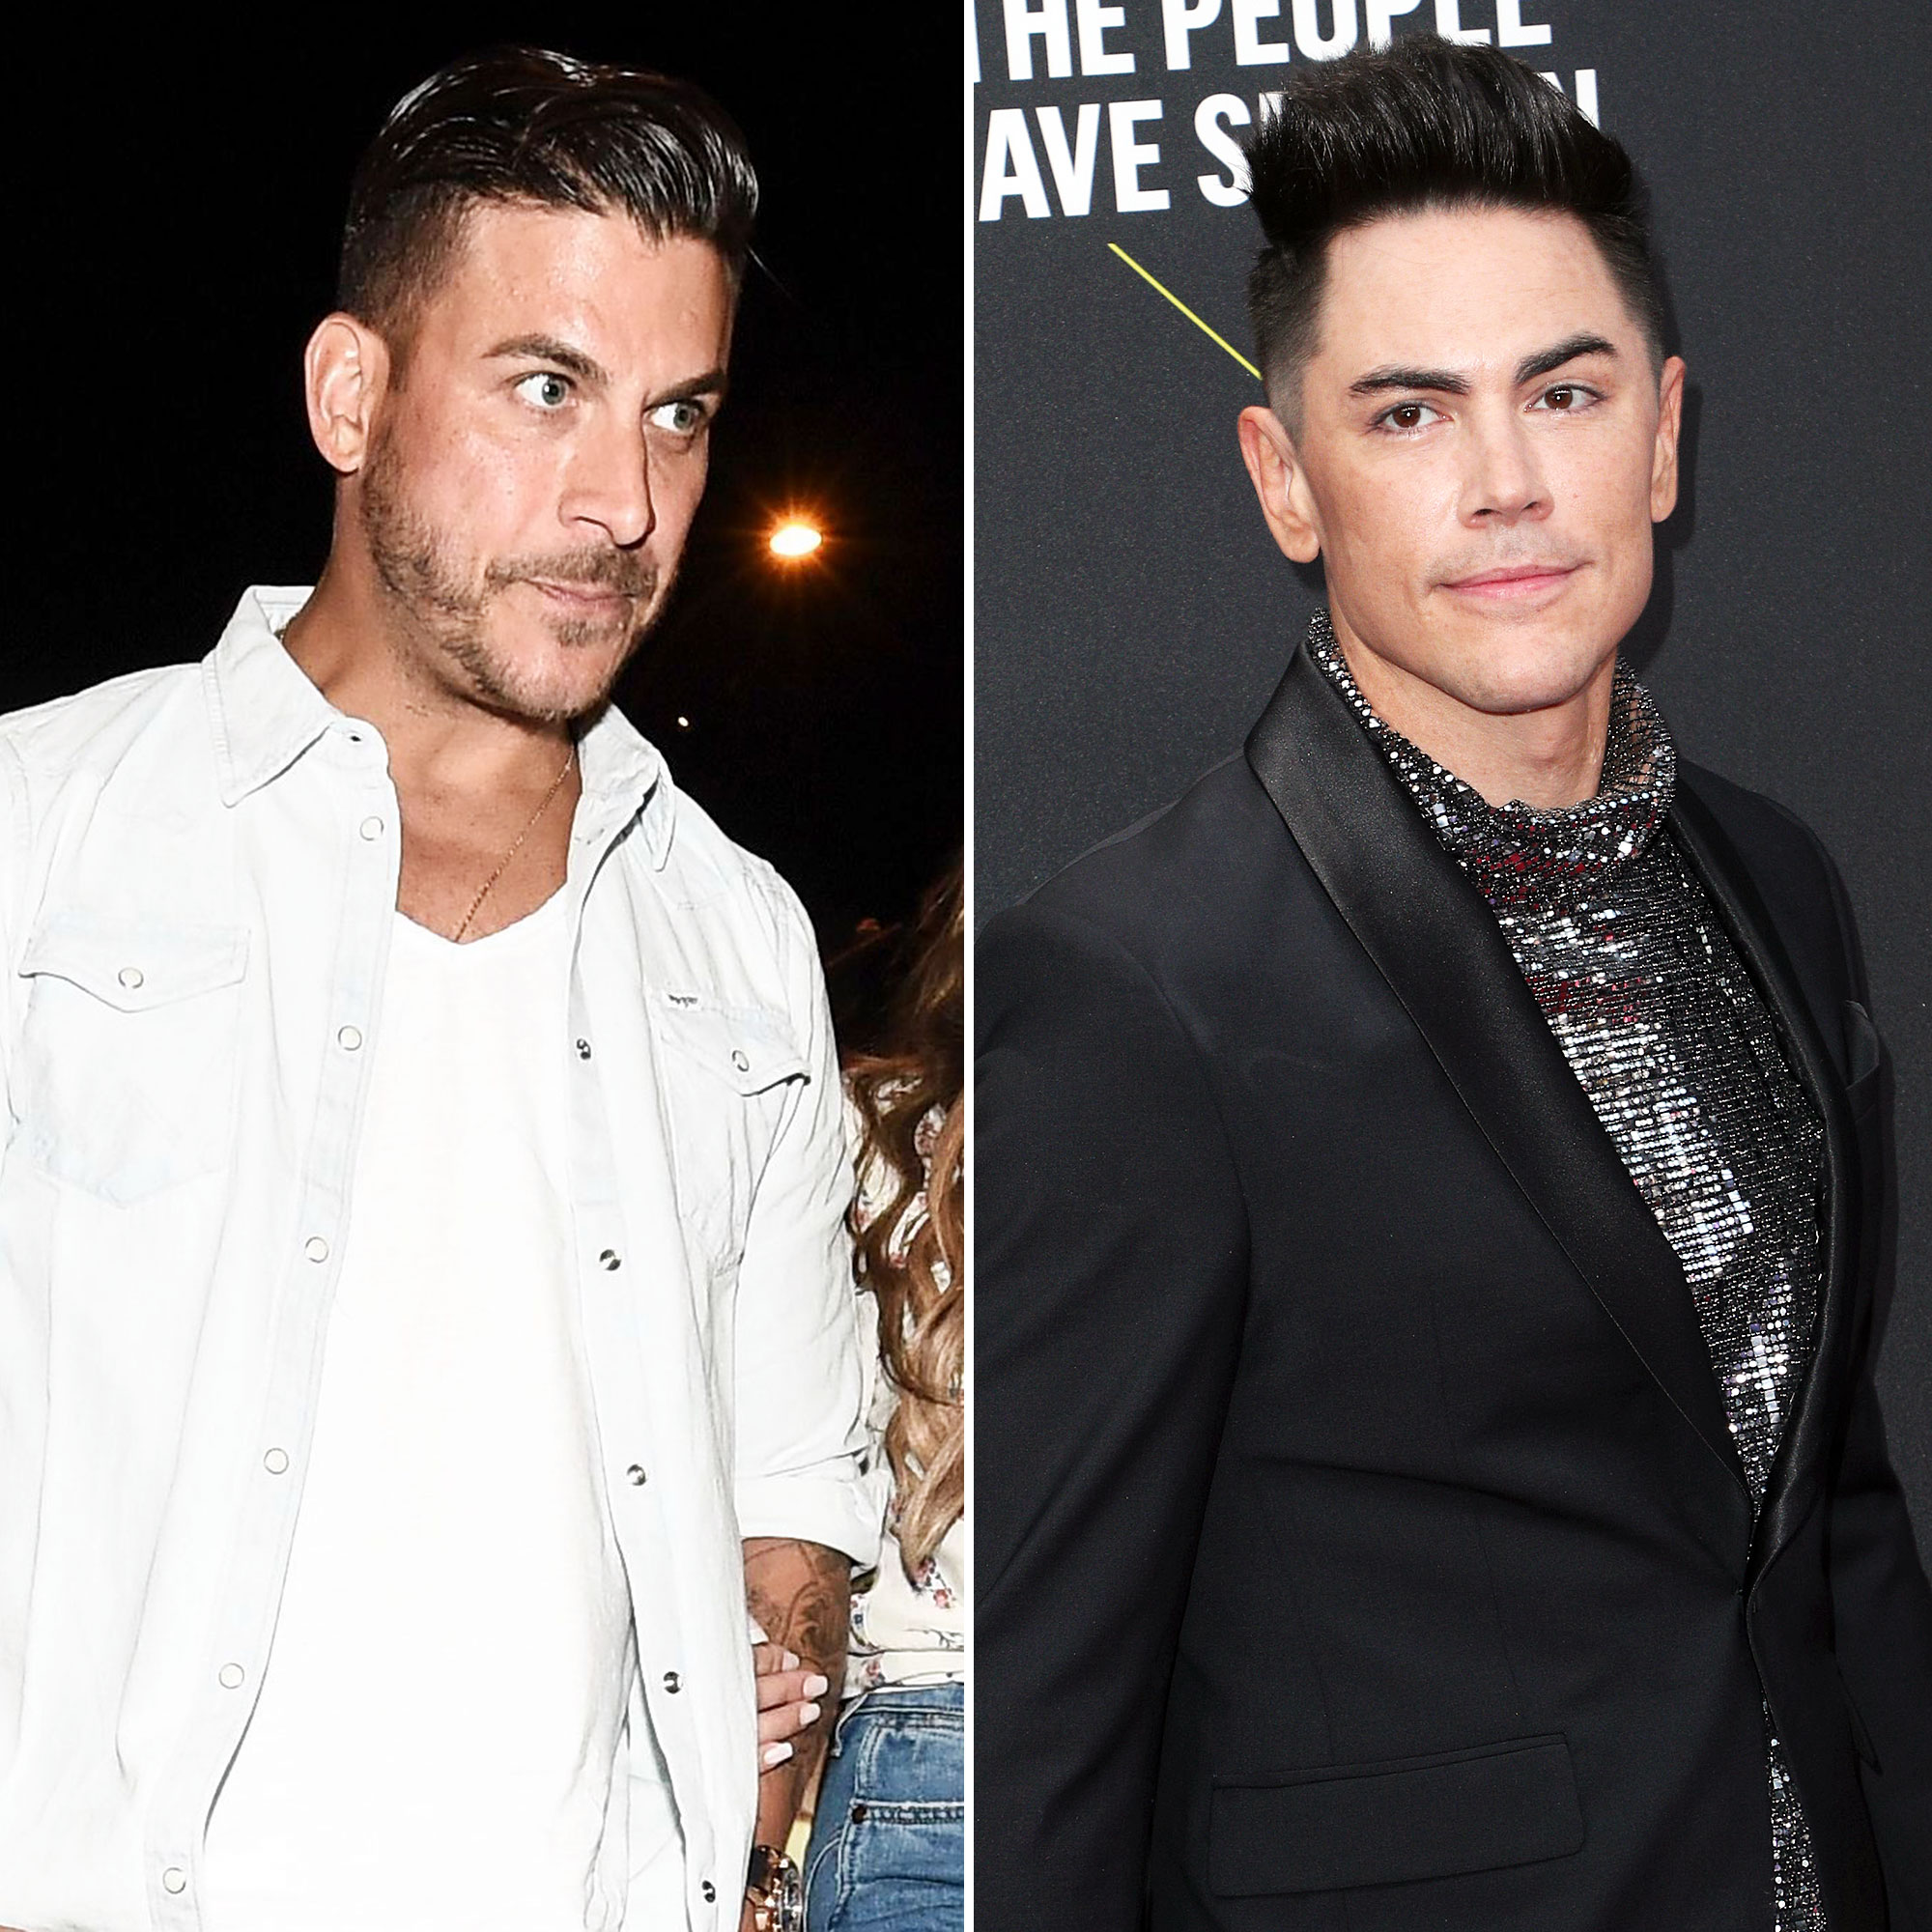 Jax Taylor Goes Off on Tom Sandoval As 'Pump Rules' Pastor Drama Plays Out